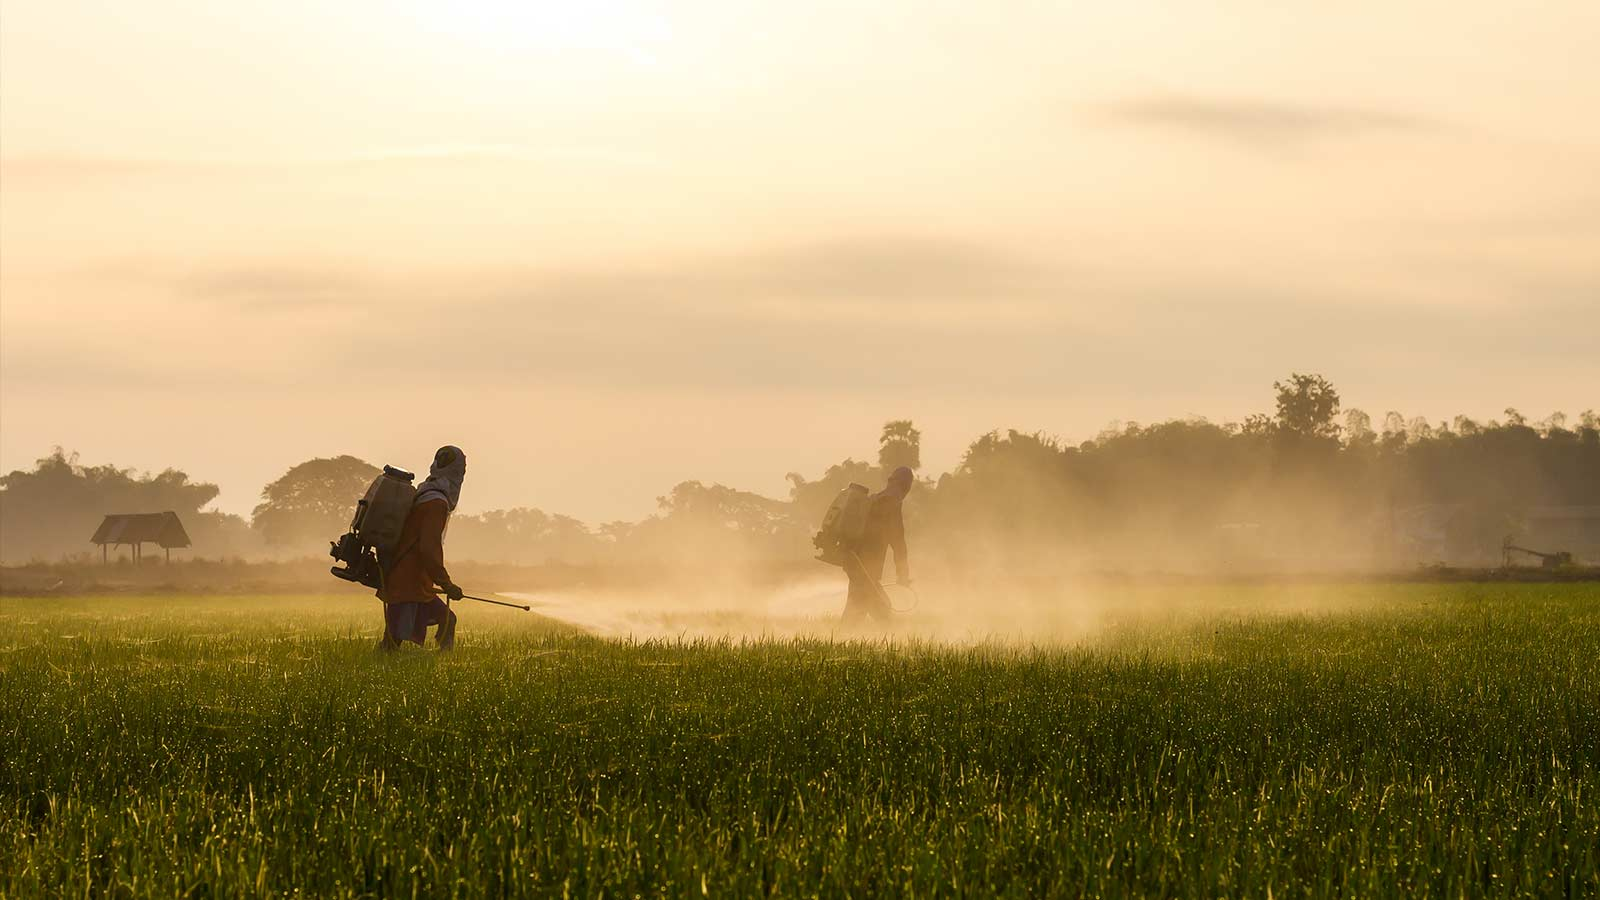 The Links Between Industrial Agriculture & Environmental Racism